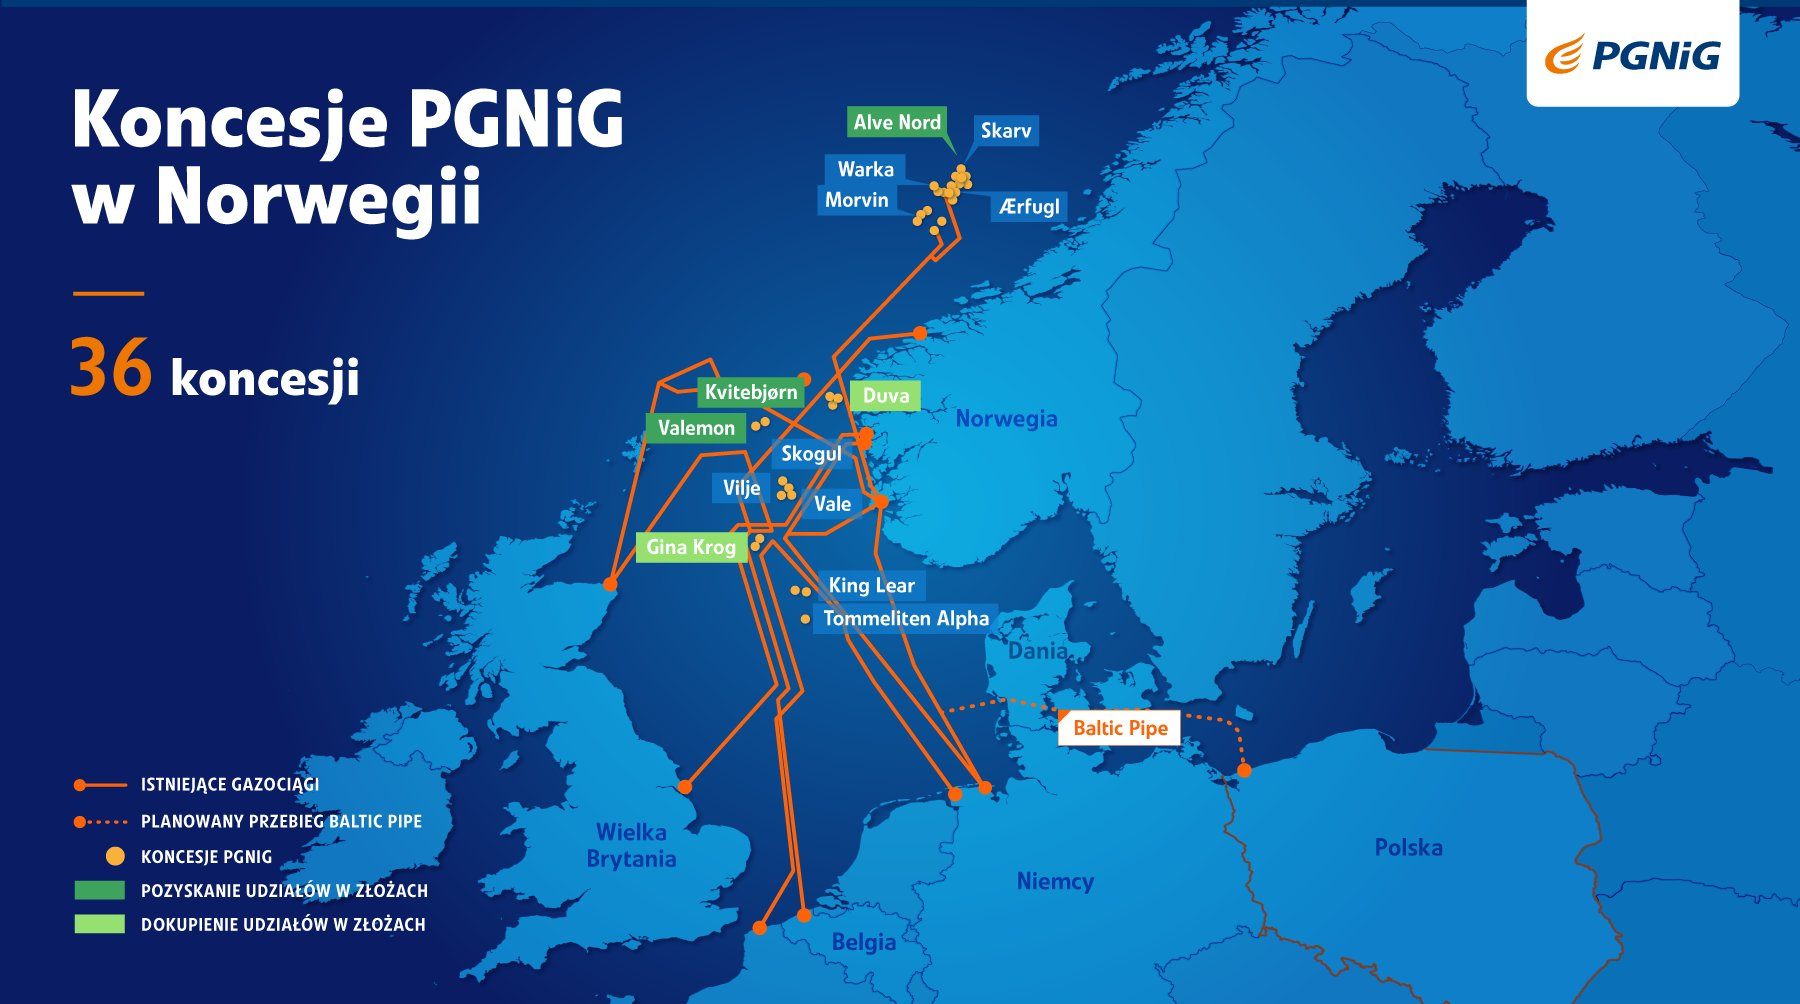 PGNiG to buy all assets of INEOS E&P Norge